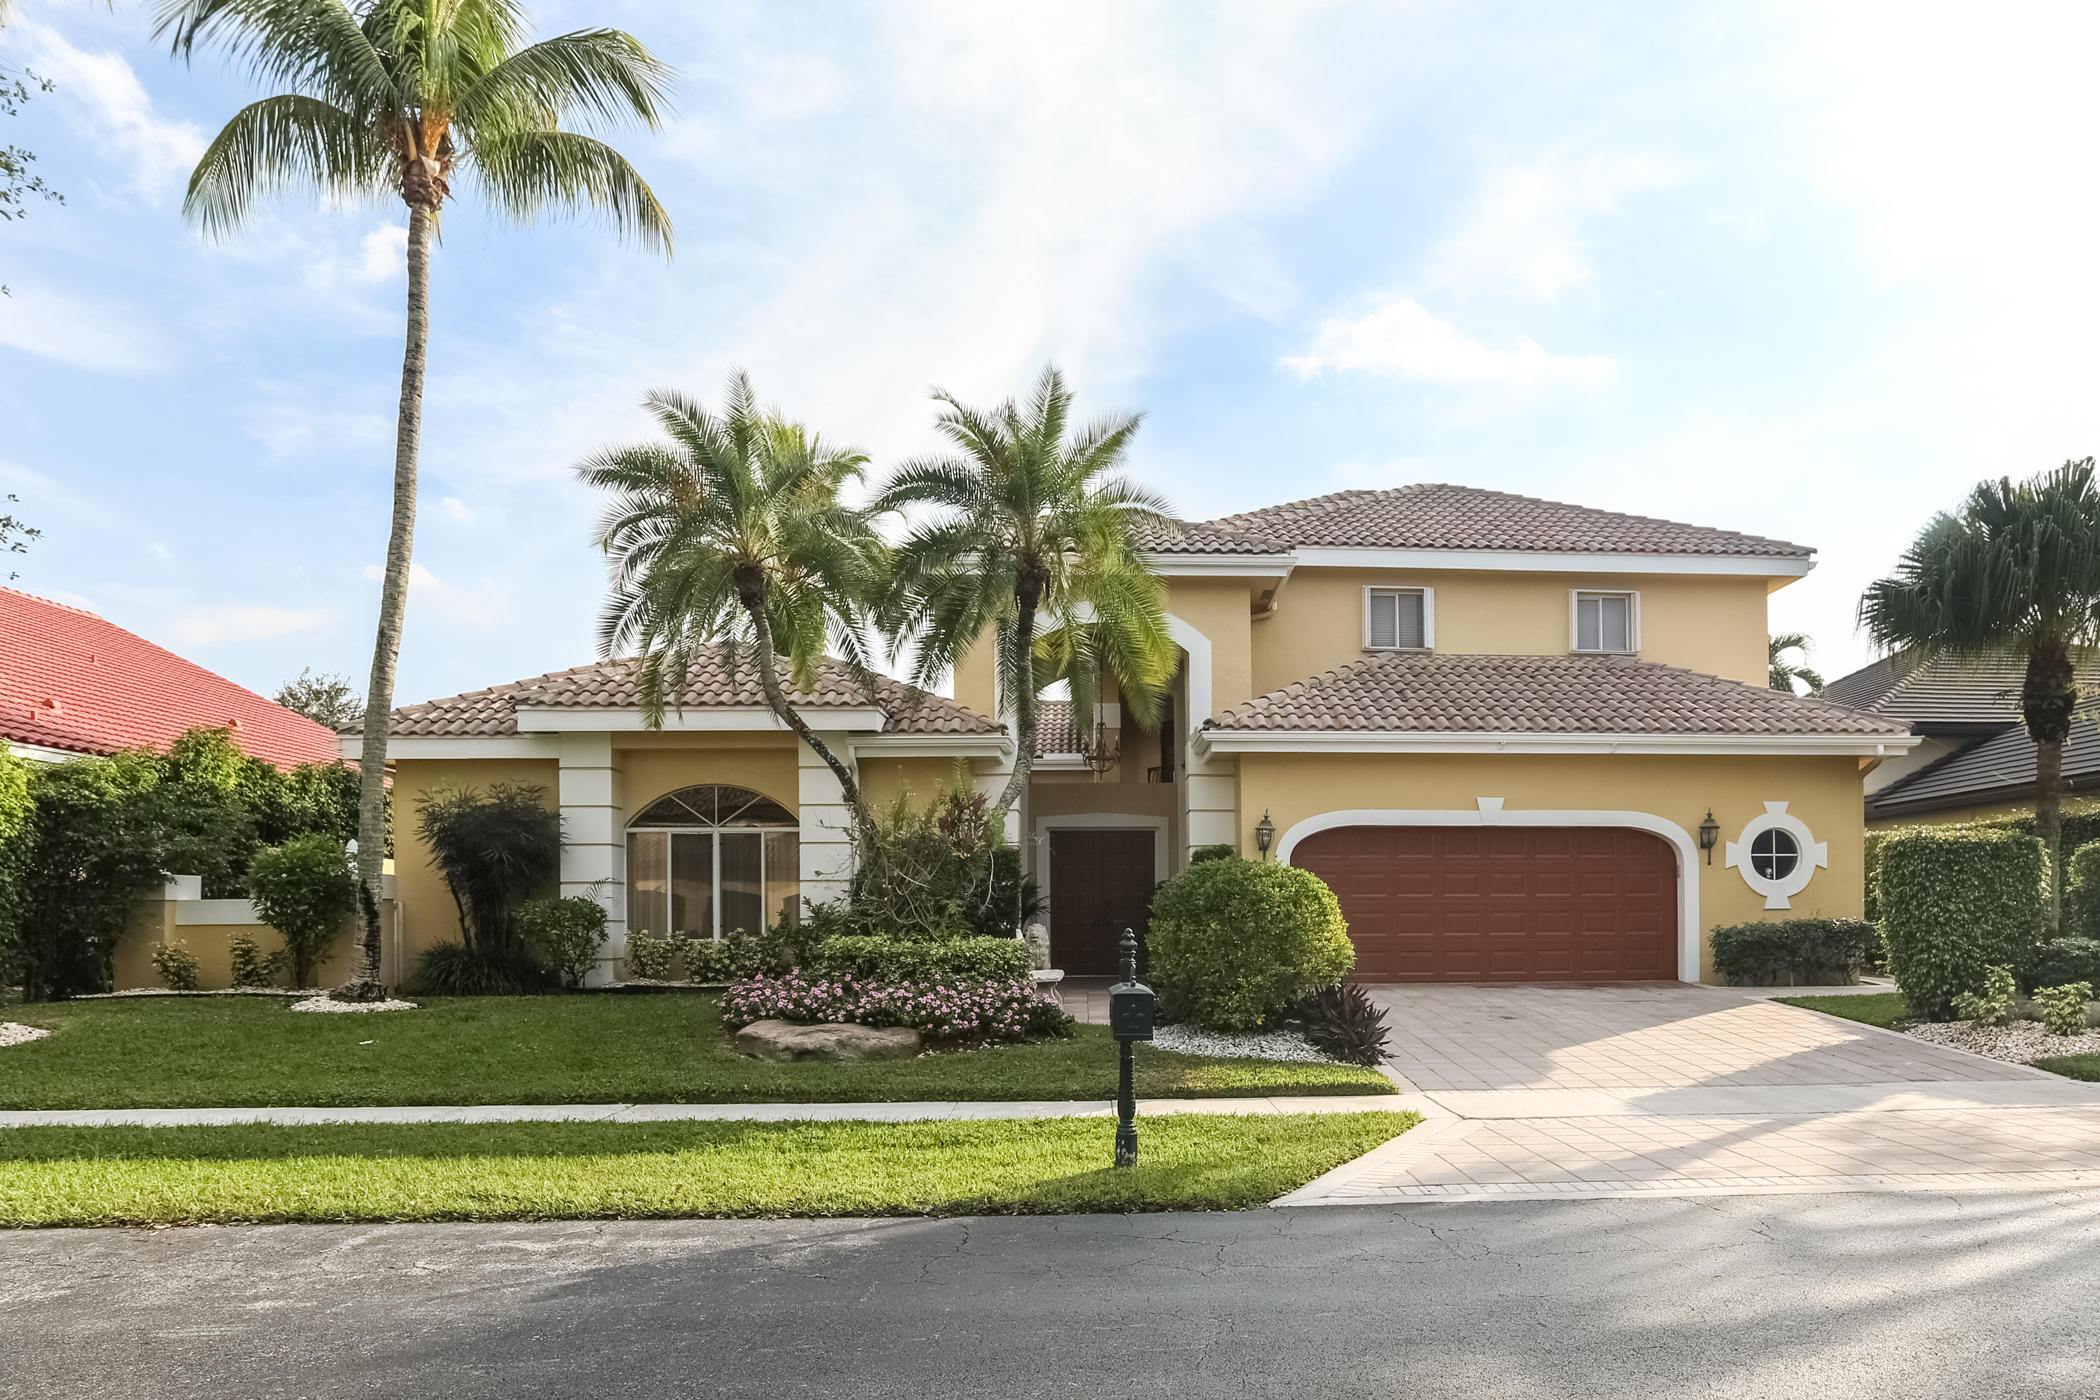 Photo of  Boca Raton, FL 33496 MLS RX-10511788